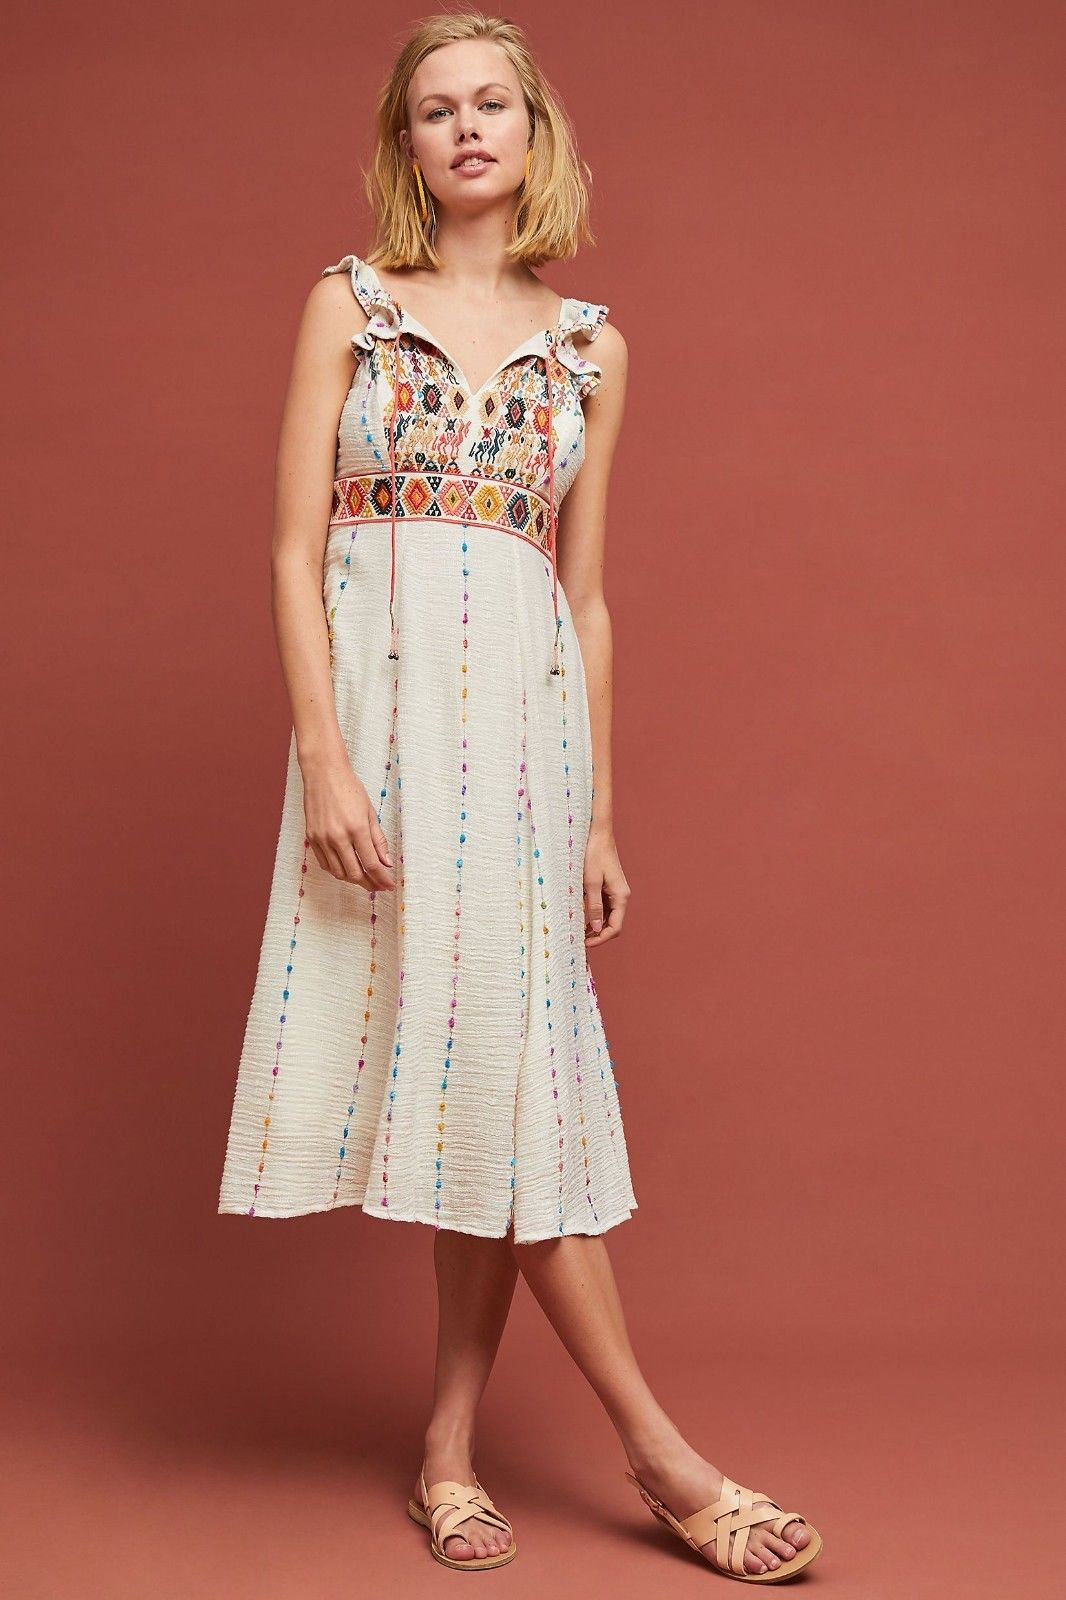 NWT ANTHROPOLOGIE LLAMA EMBROIDERED DRESS by MAEVE 12